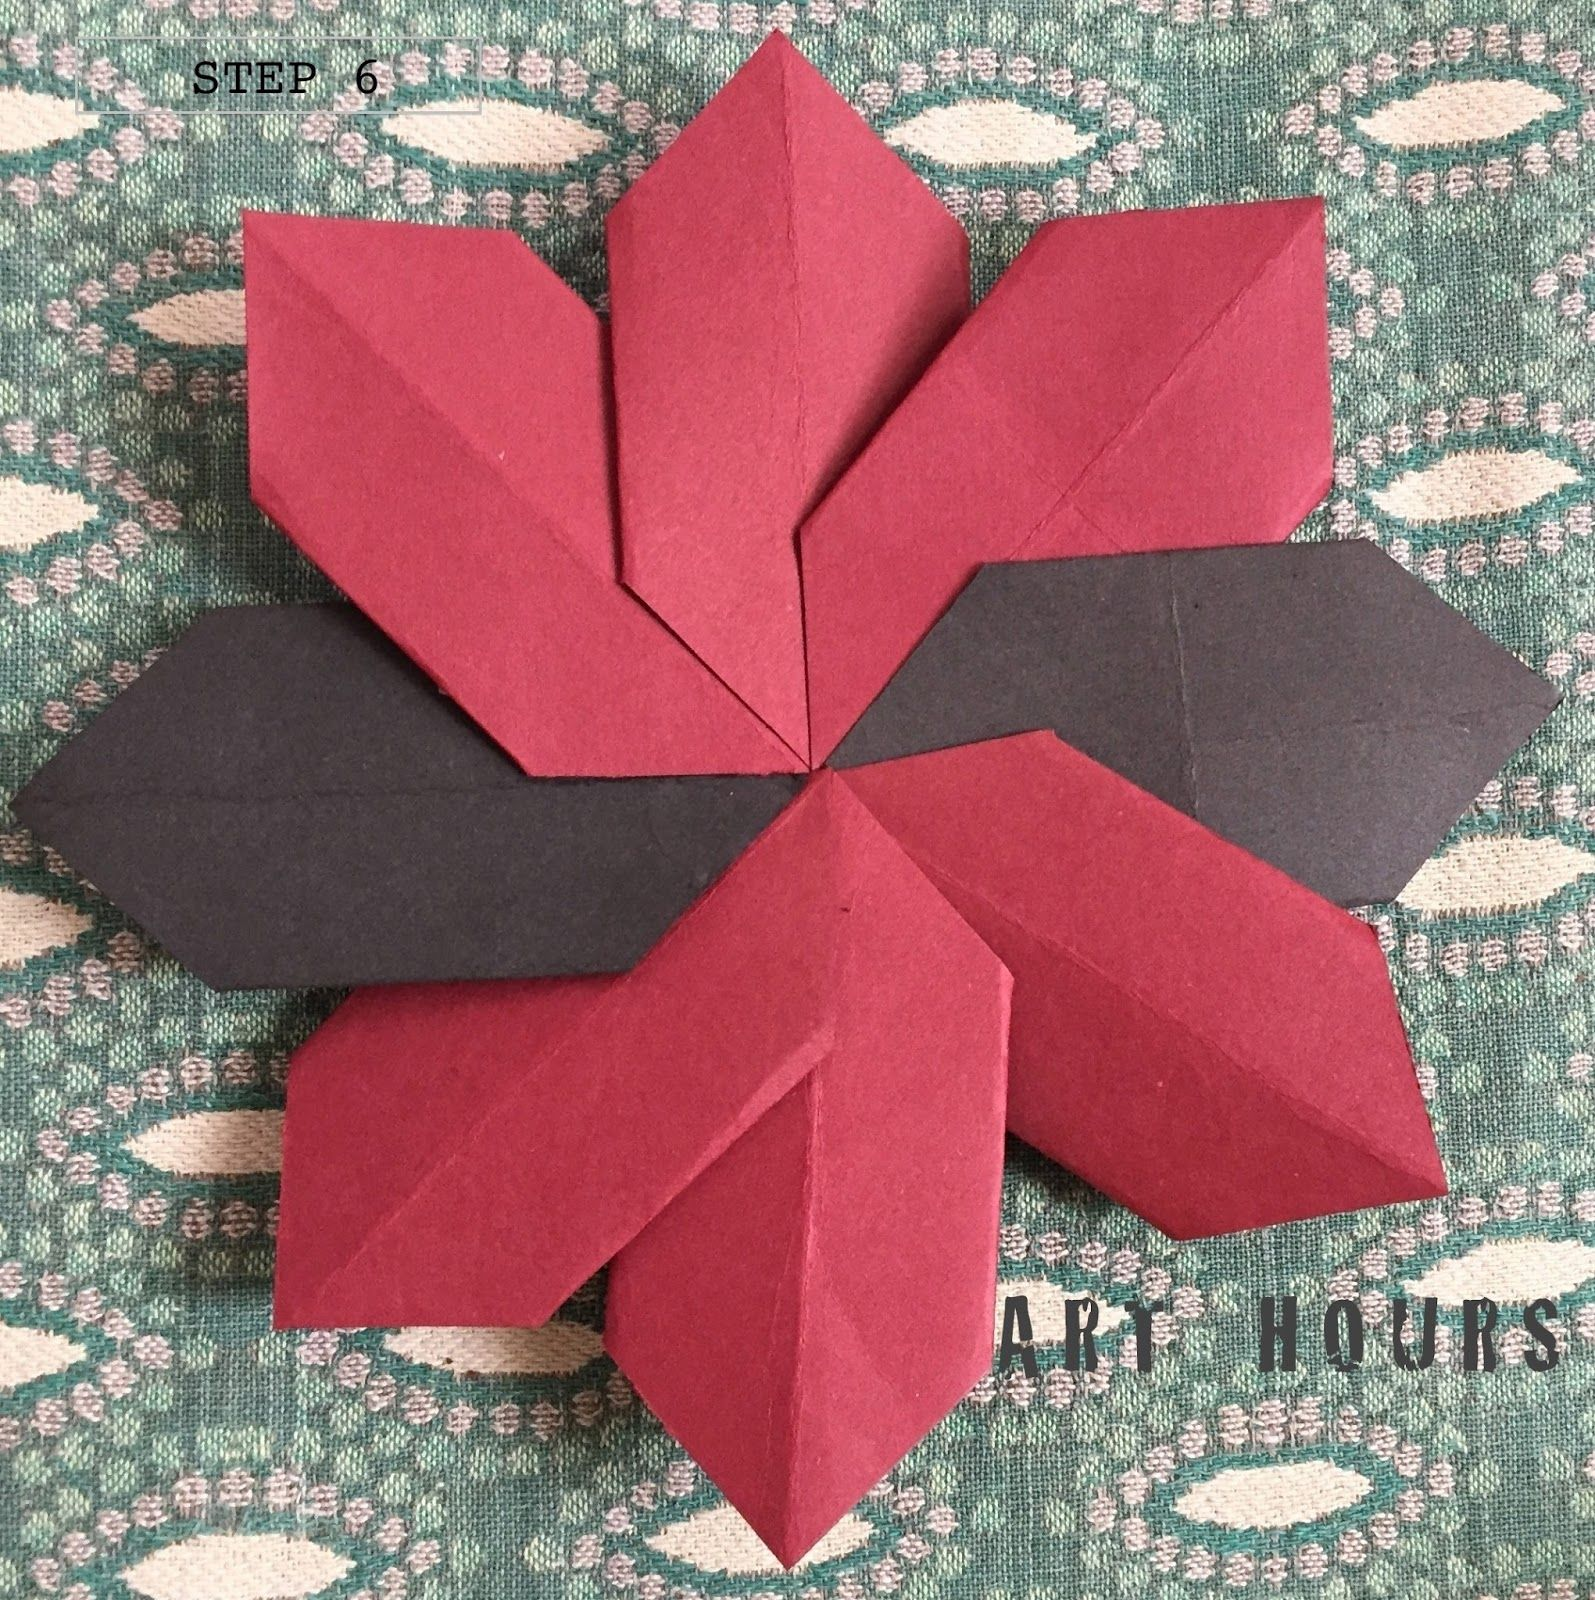 Origami Flower Modular Origami Instructions Origami Tutorials